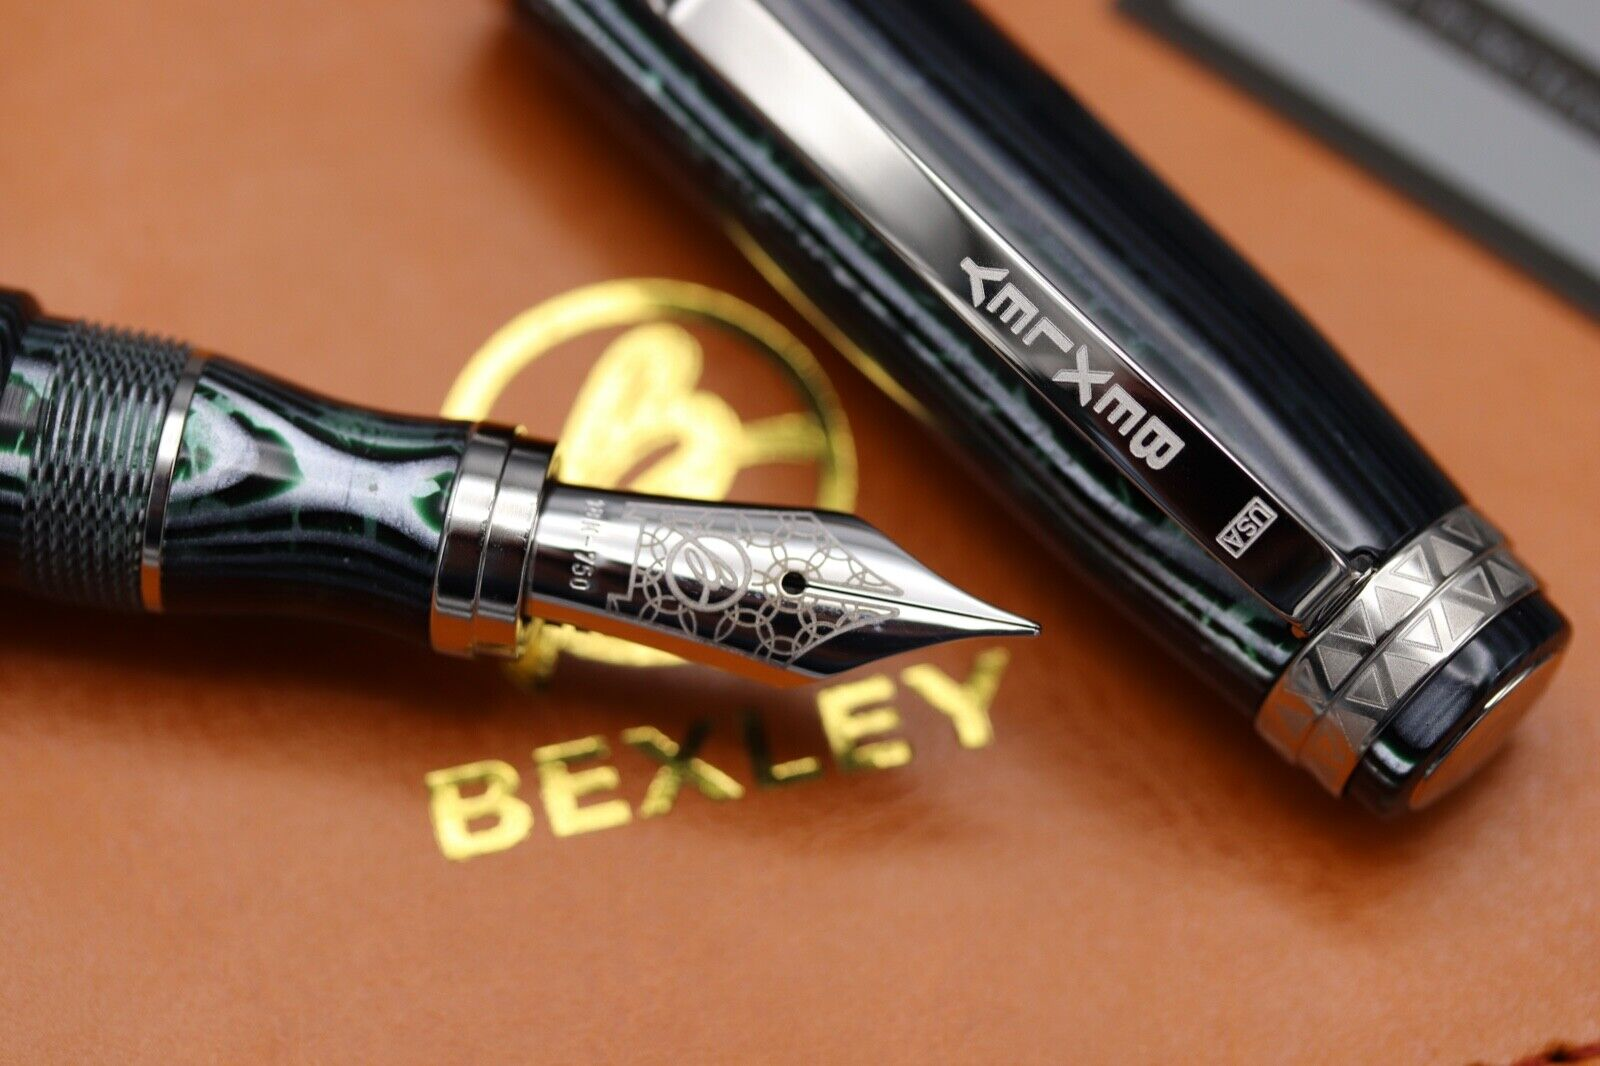 Bexley Golden Age Triangles Arco Verde Limited Edition Fountain Pen 4